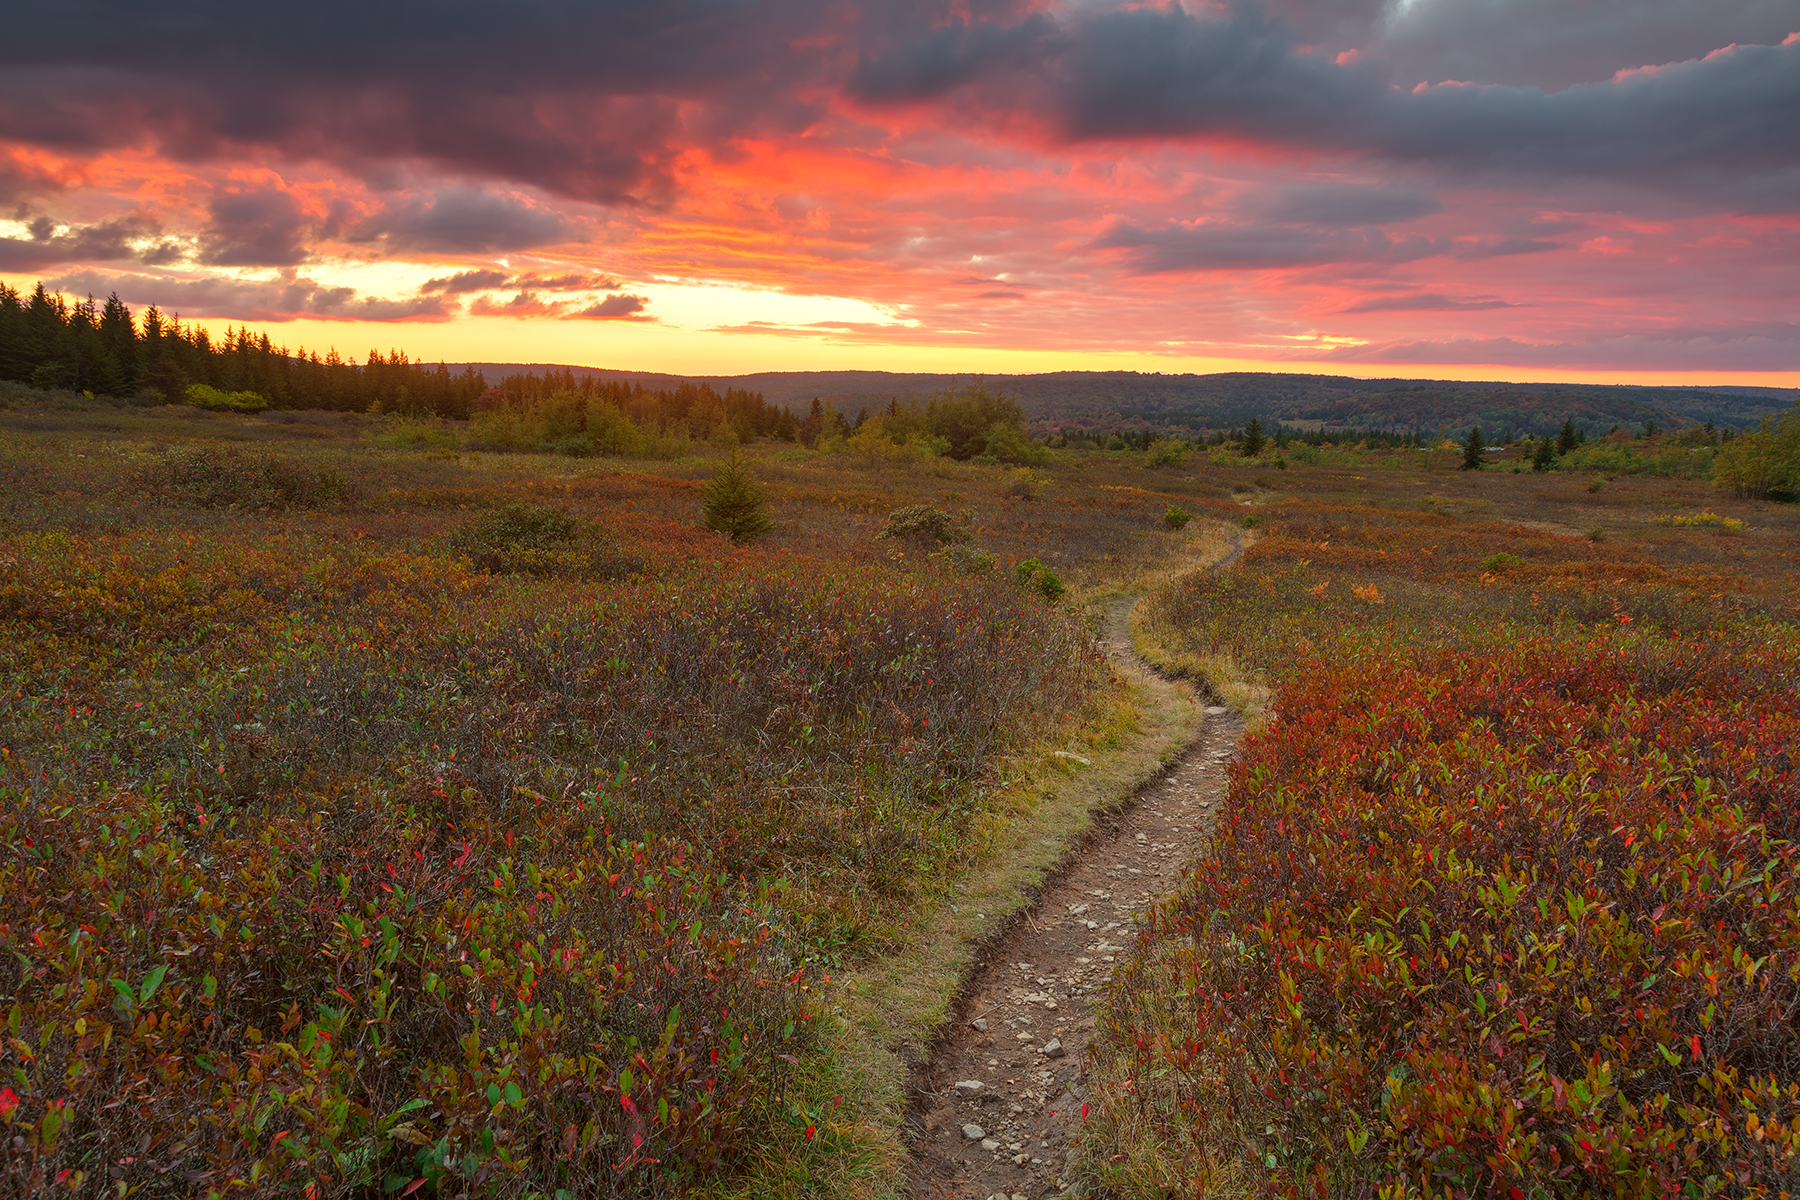 Dolly sods twilight trail - hdr photo